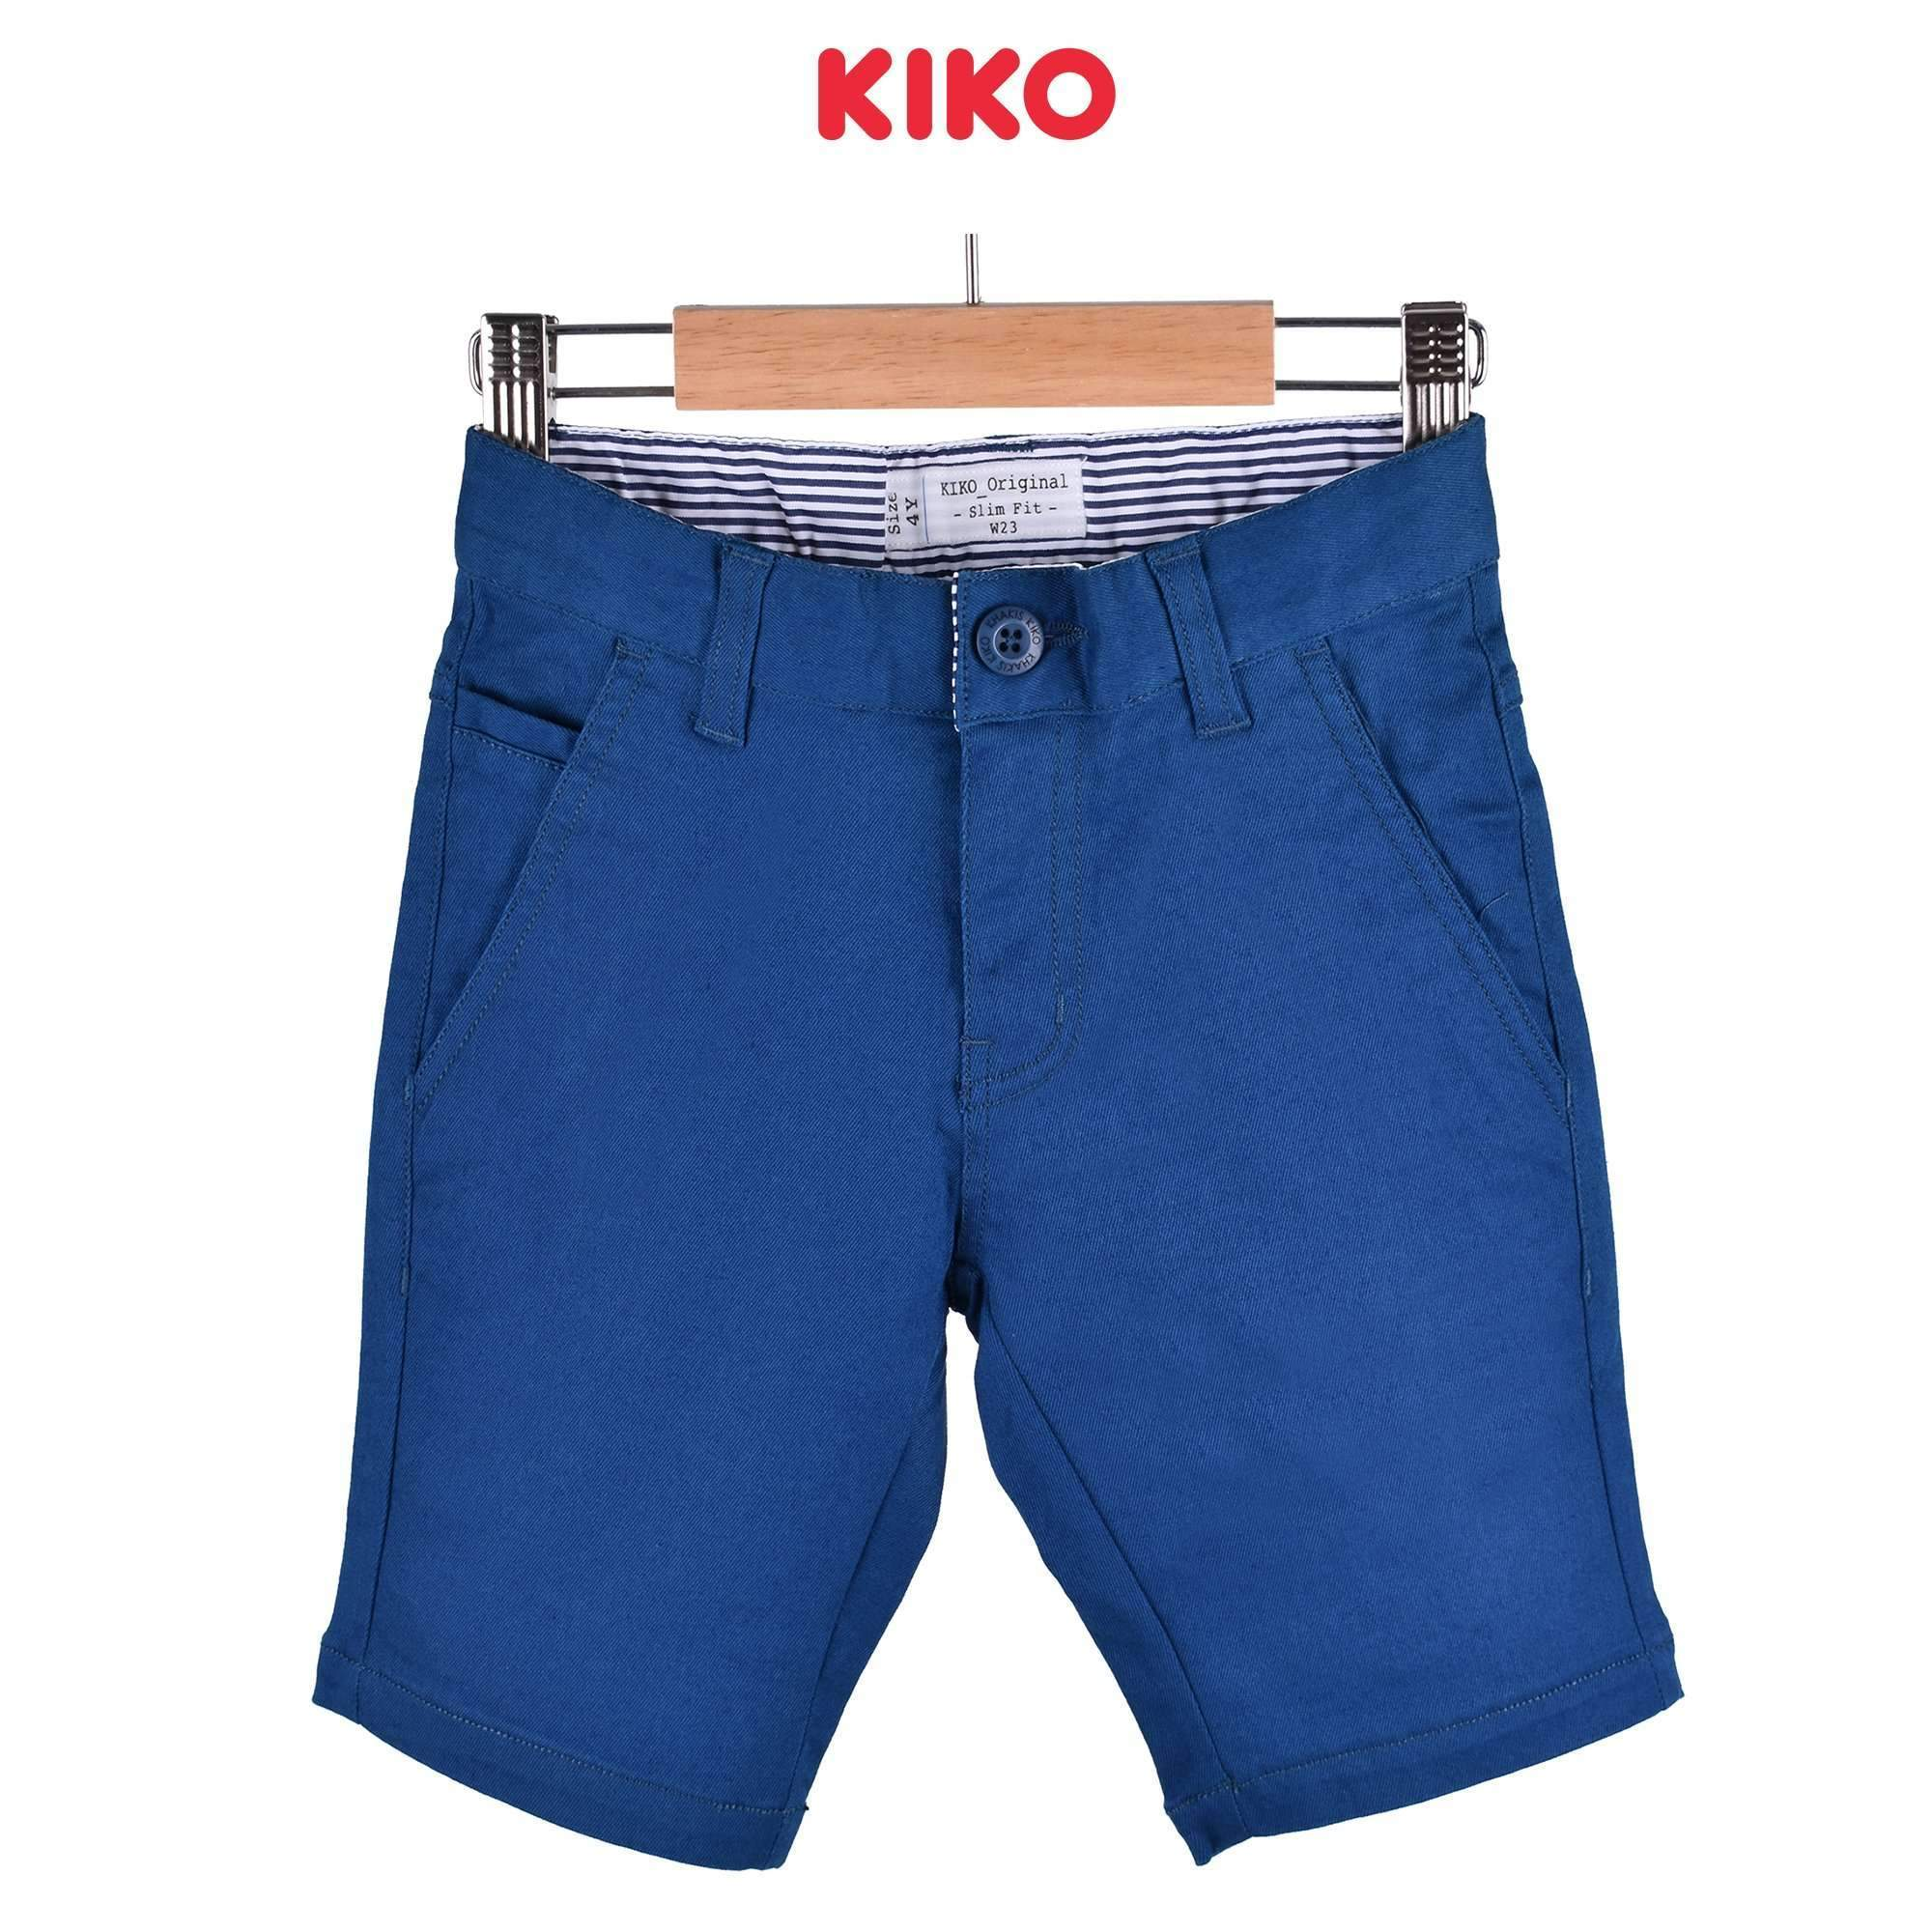 KIKO Boy Short Pants 120062-242 : Buy KIKO online at CMG.MY